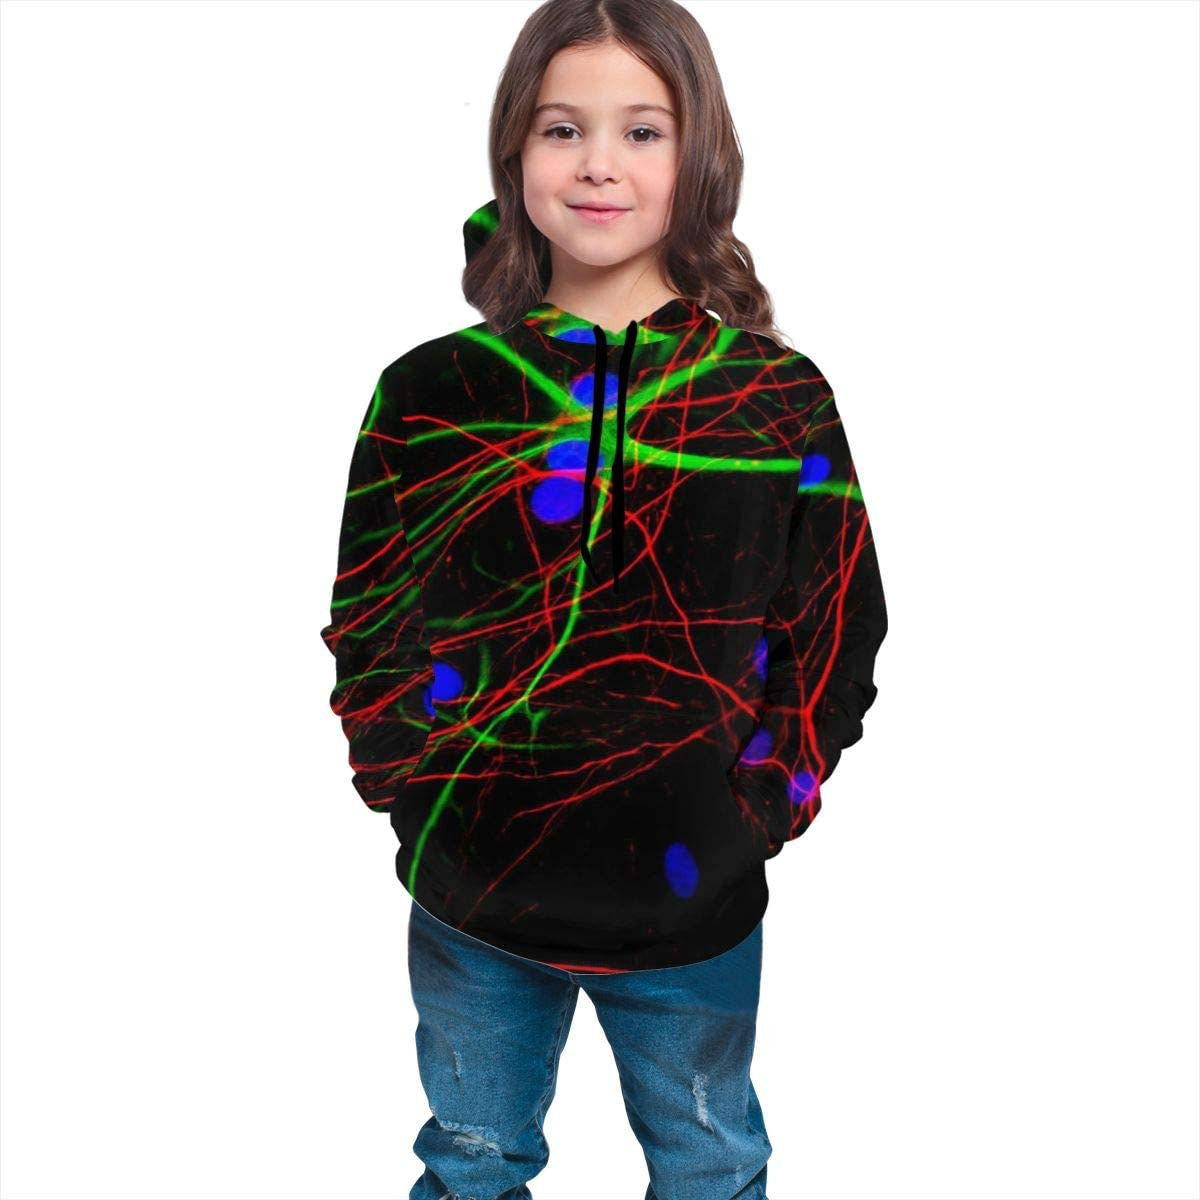 Lichenran Funny Neurofilament Unisex Pullover Teens Hoodie Hooded Sweatshirt Colorful